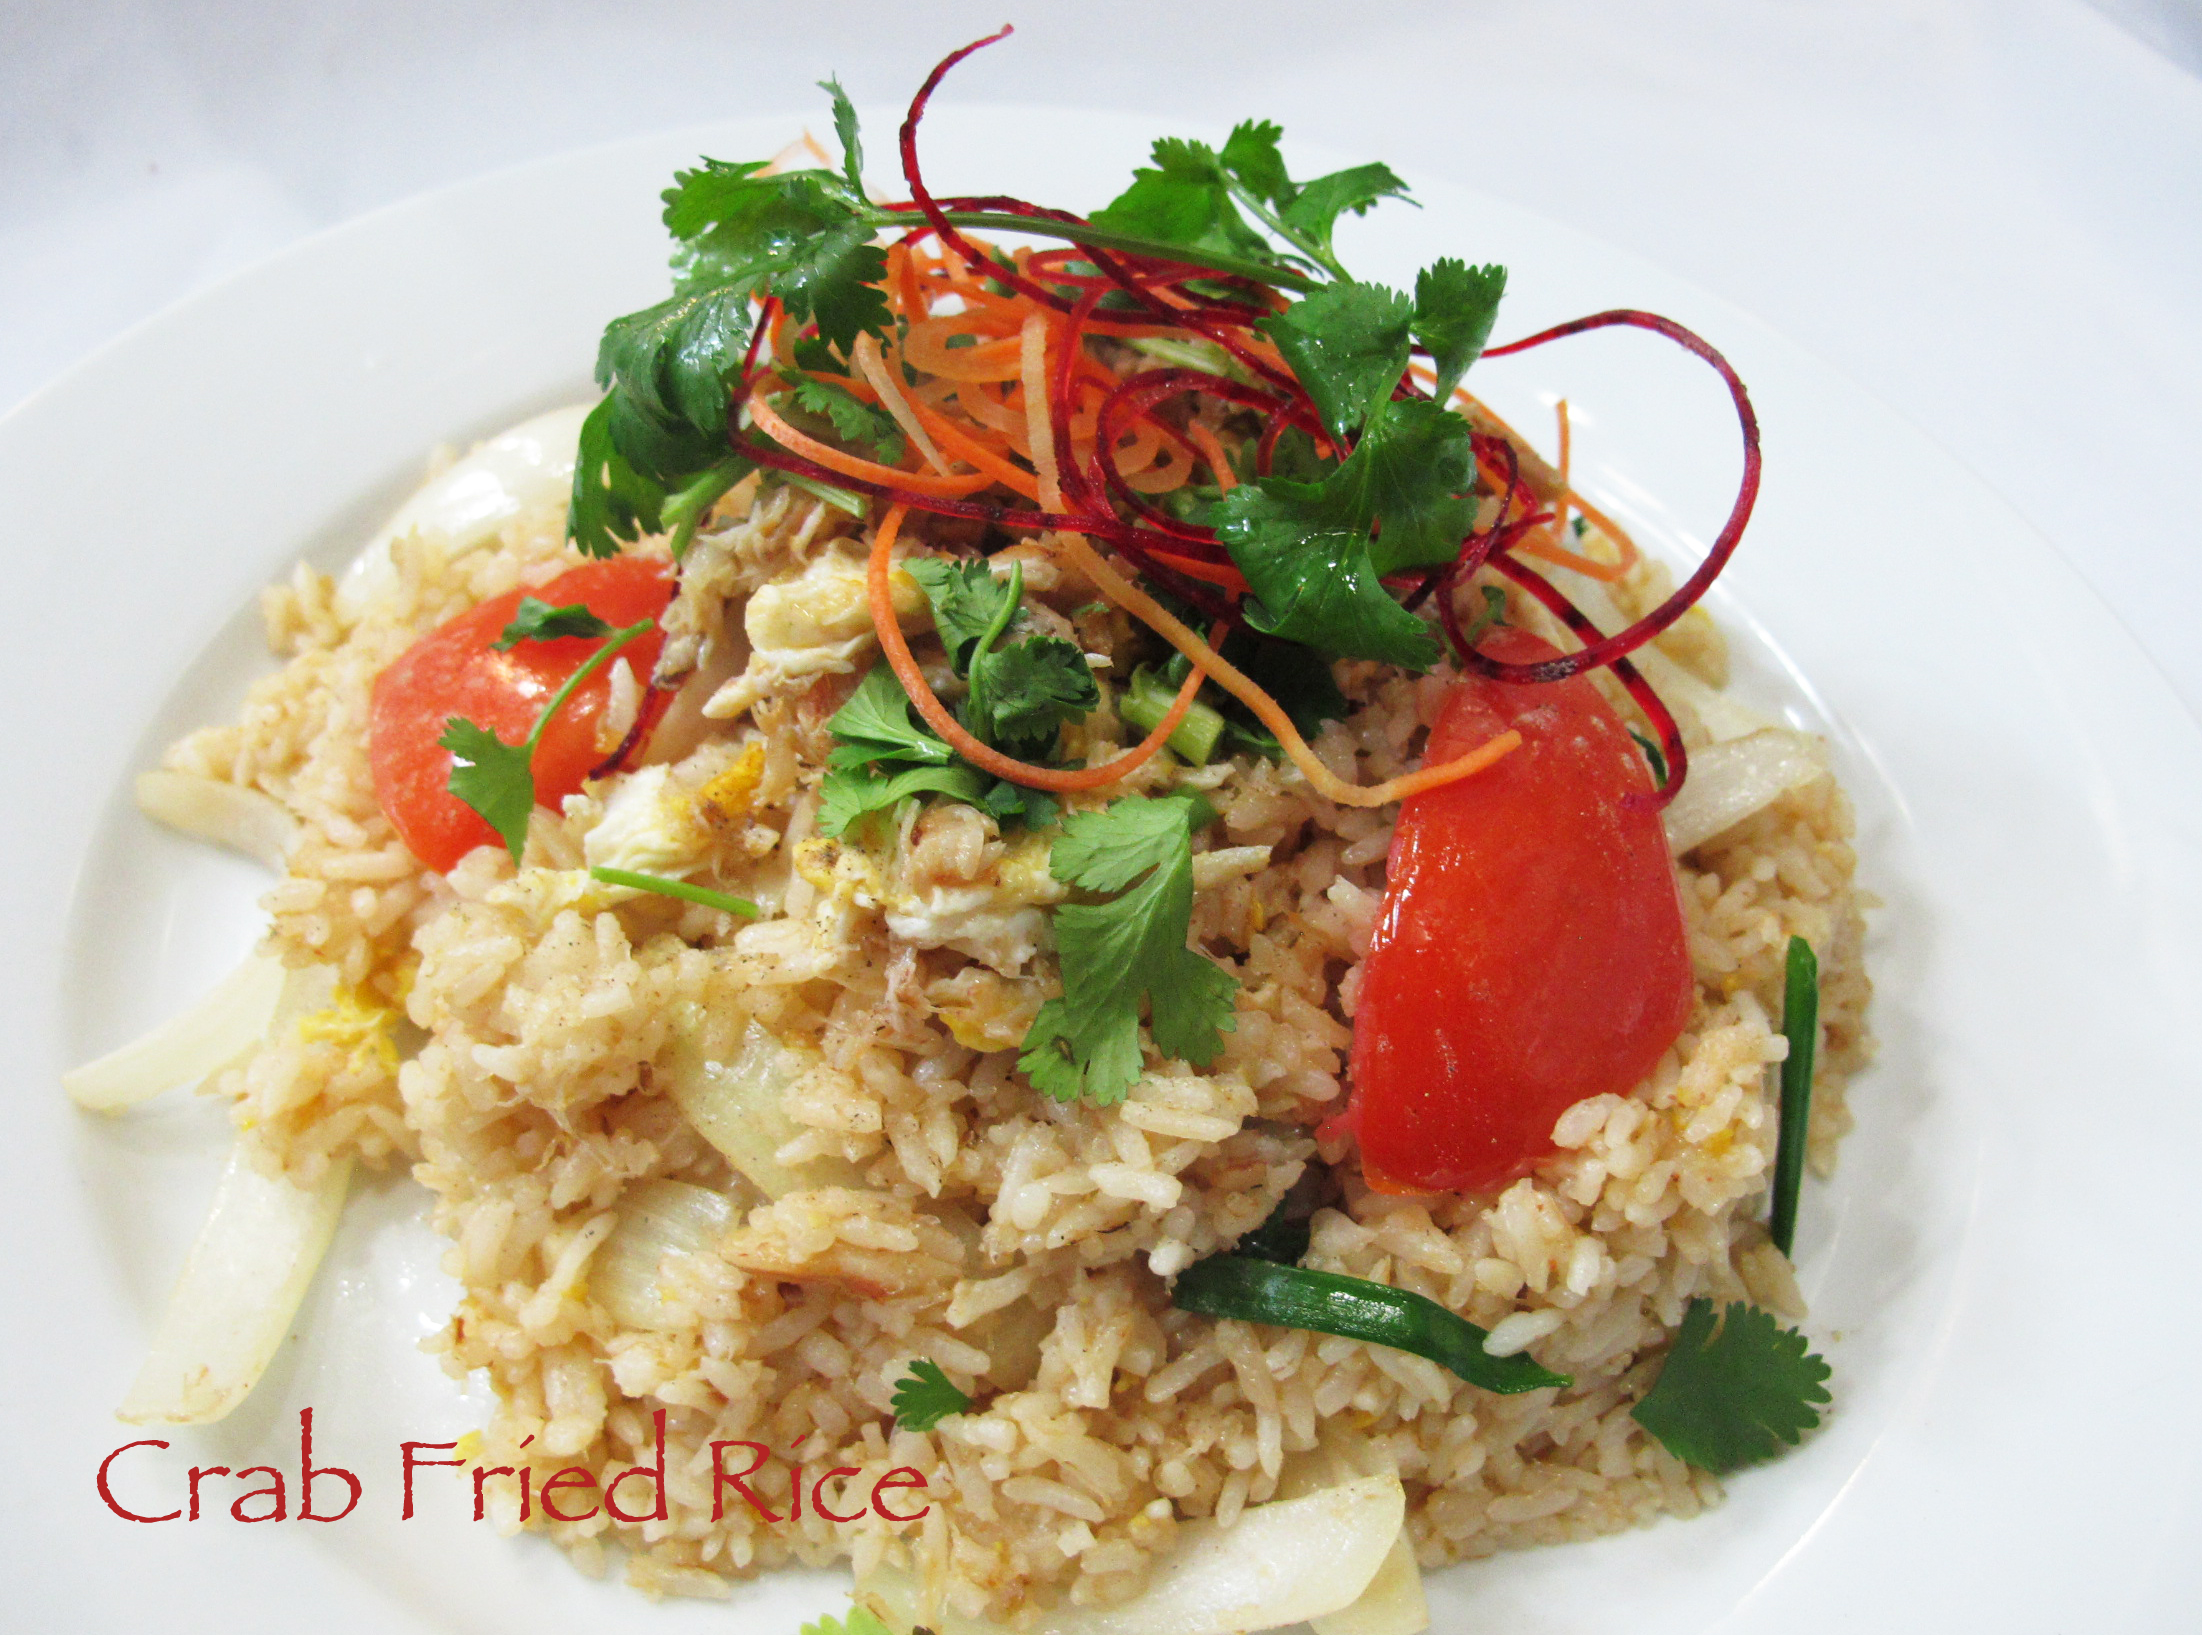 Crab Fried Rice.jpg